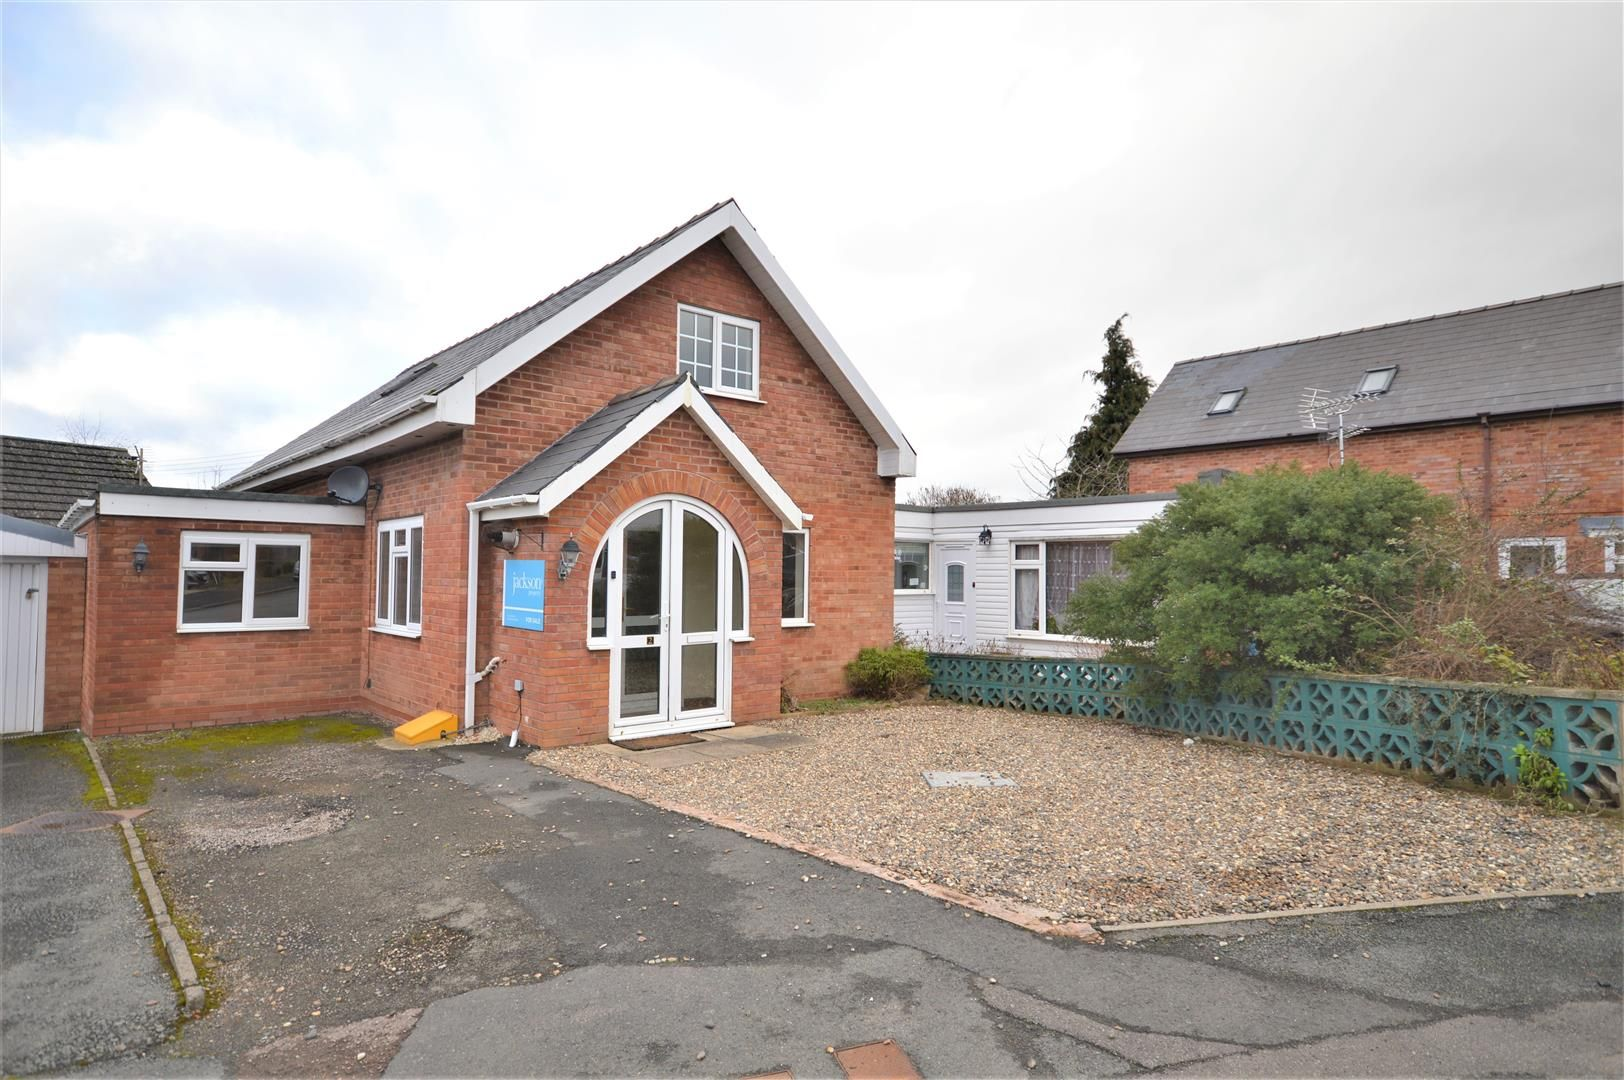 4 bed detached bungalow for sale in Marden, HR1